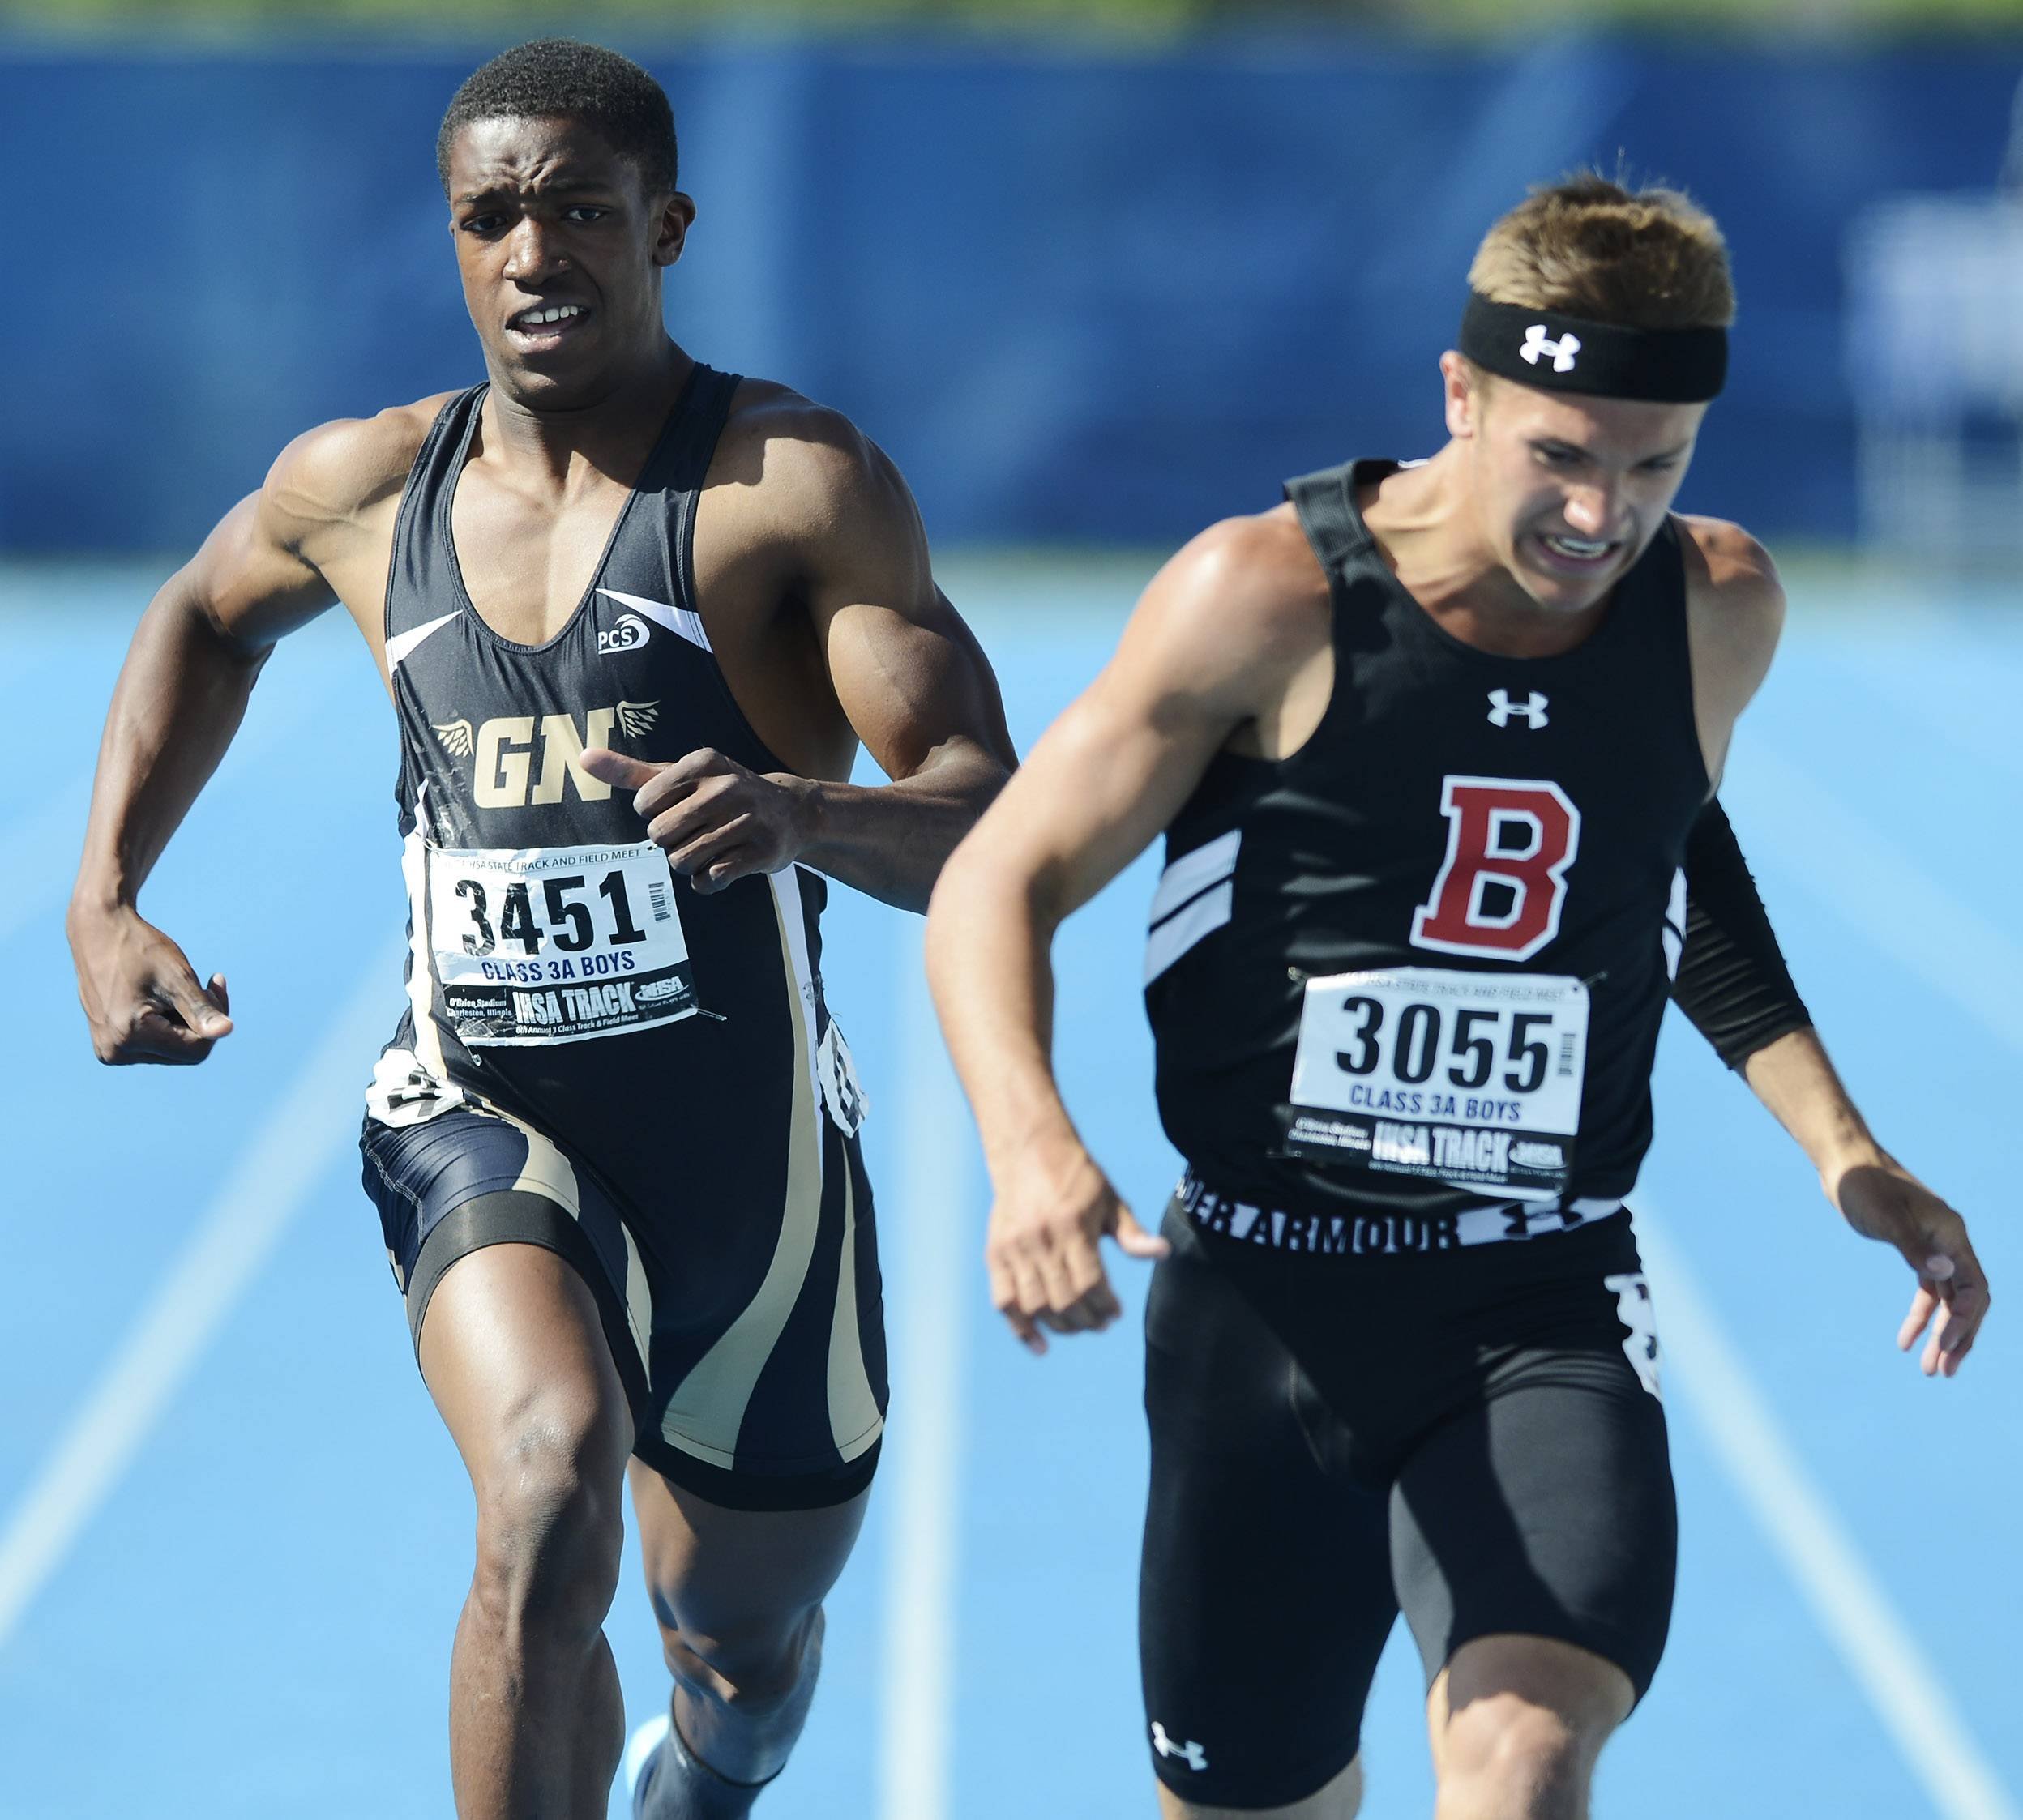 Barrington's Scotty Miller, right, and Grayslake North's Titus Booker cross the finish line in the 200-meter dash during the Class 3A boys track and field state finals in Charleston on Saturday.